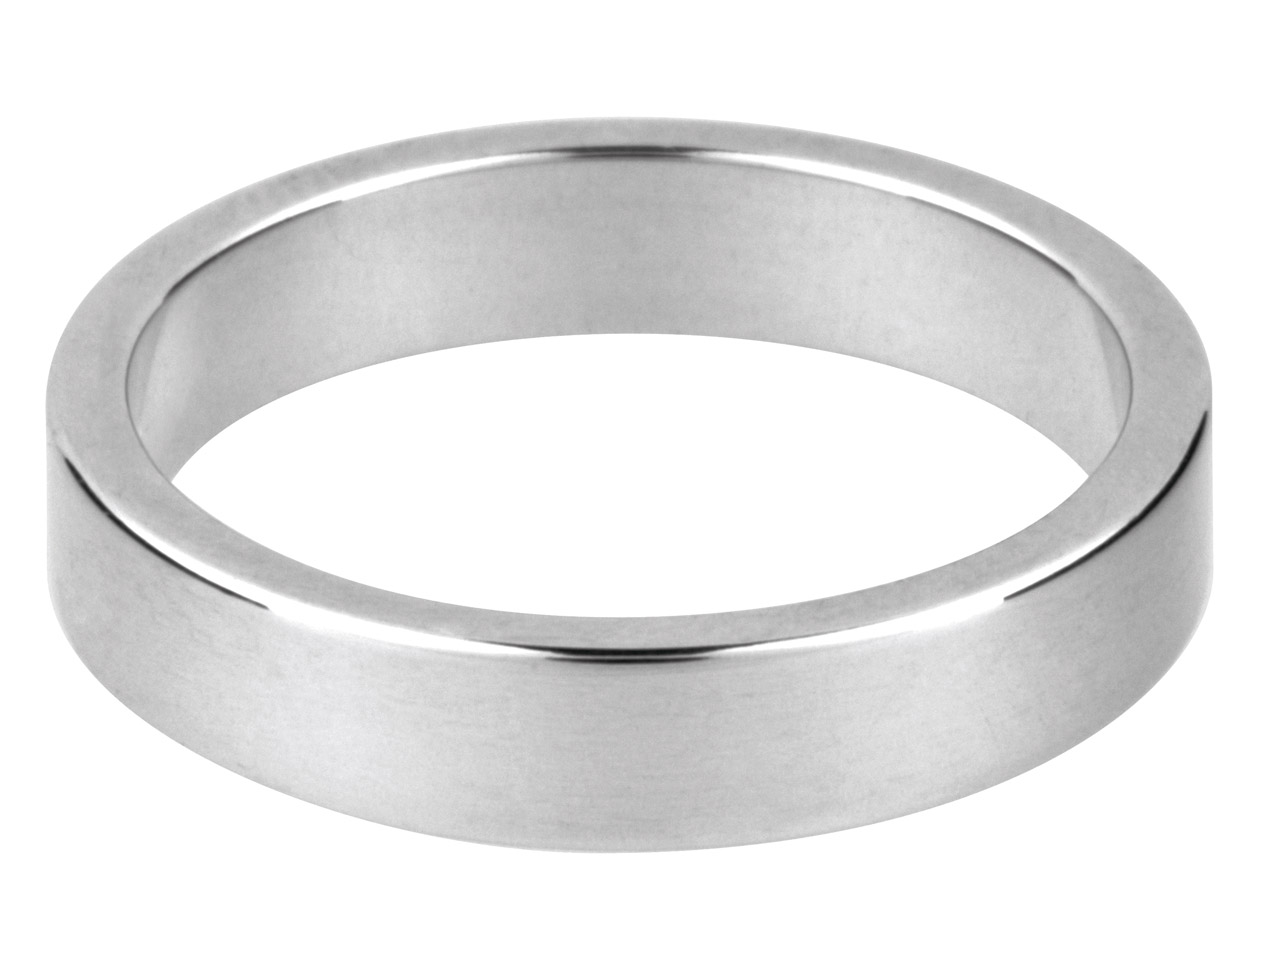 Palladium 500 Flat Wedding Ring    6.0mm S 5.6gms Medium Weight       Hallmarked Wall Thickness 1.26mm